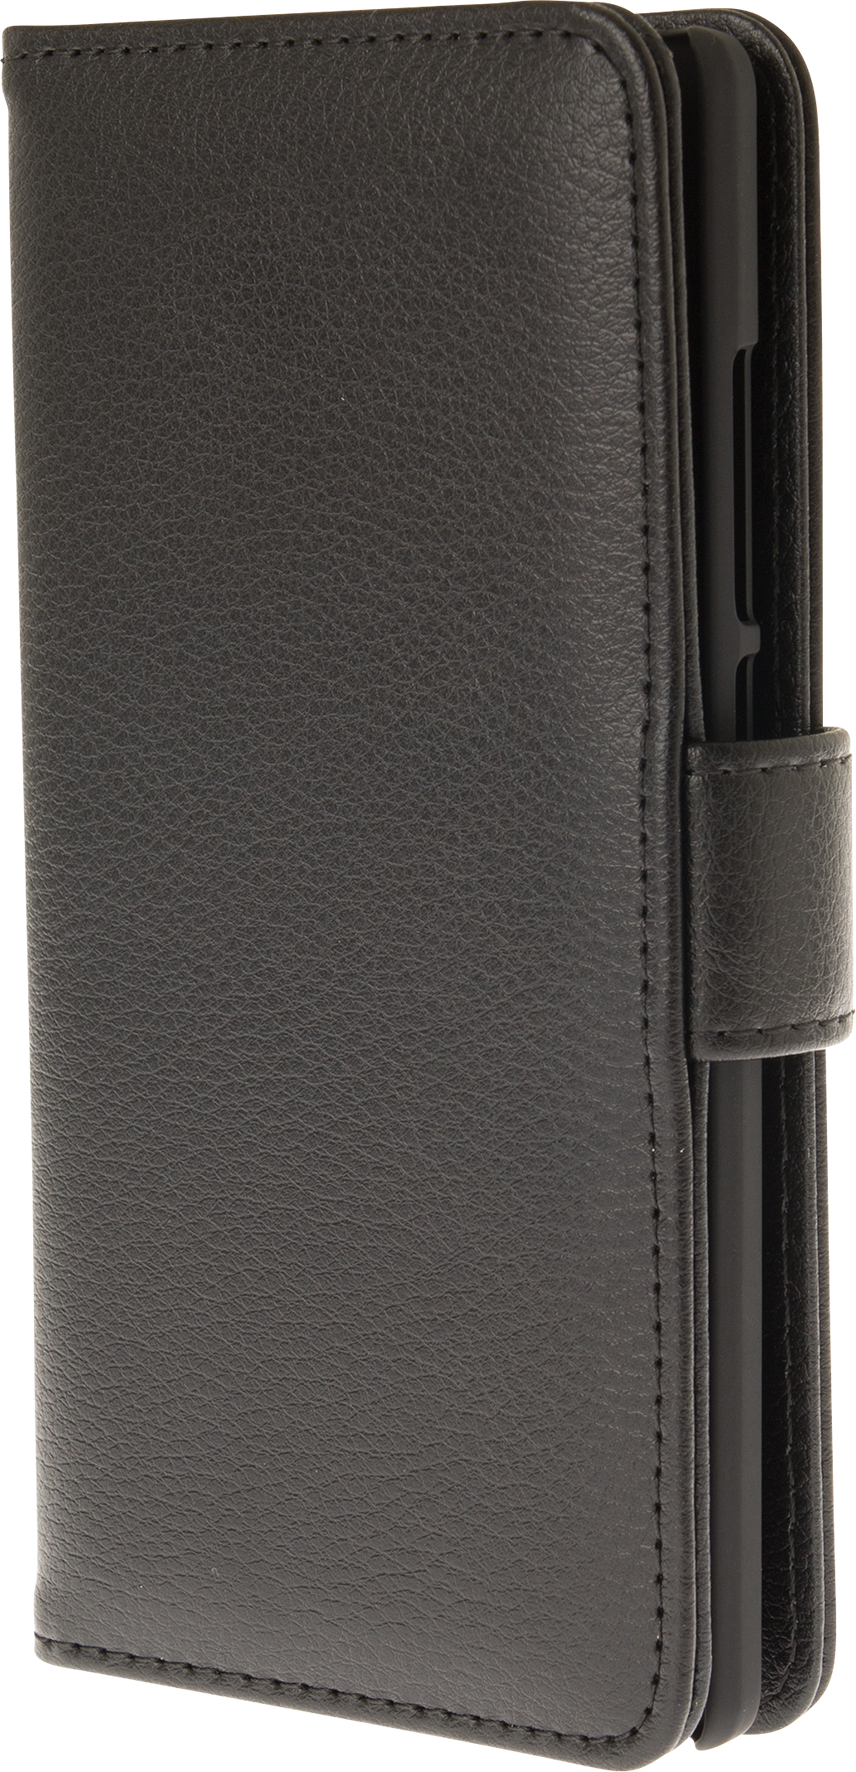 Läs mer om iZound Leather Wallet Case OnePlus 2 Black